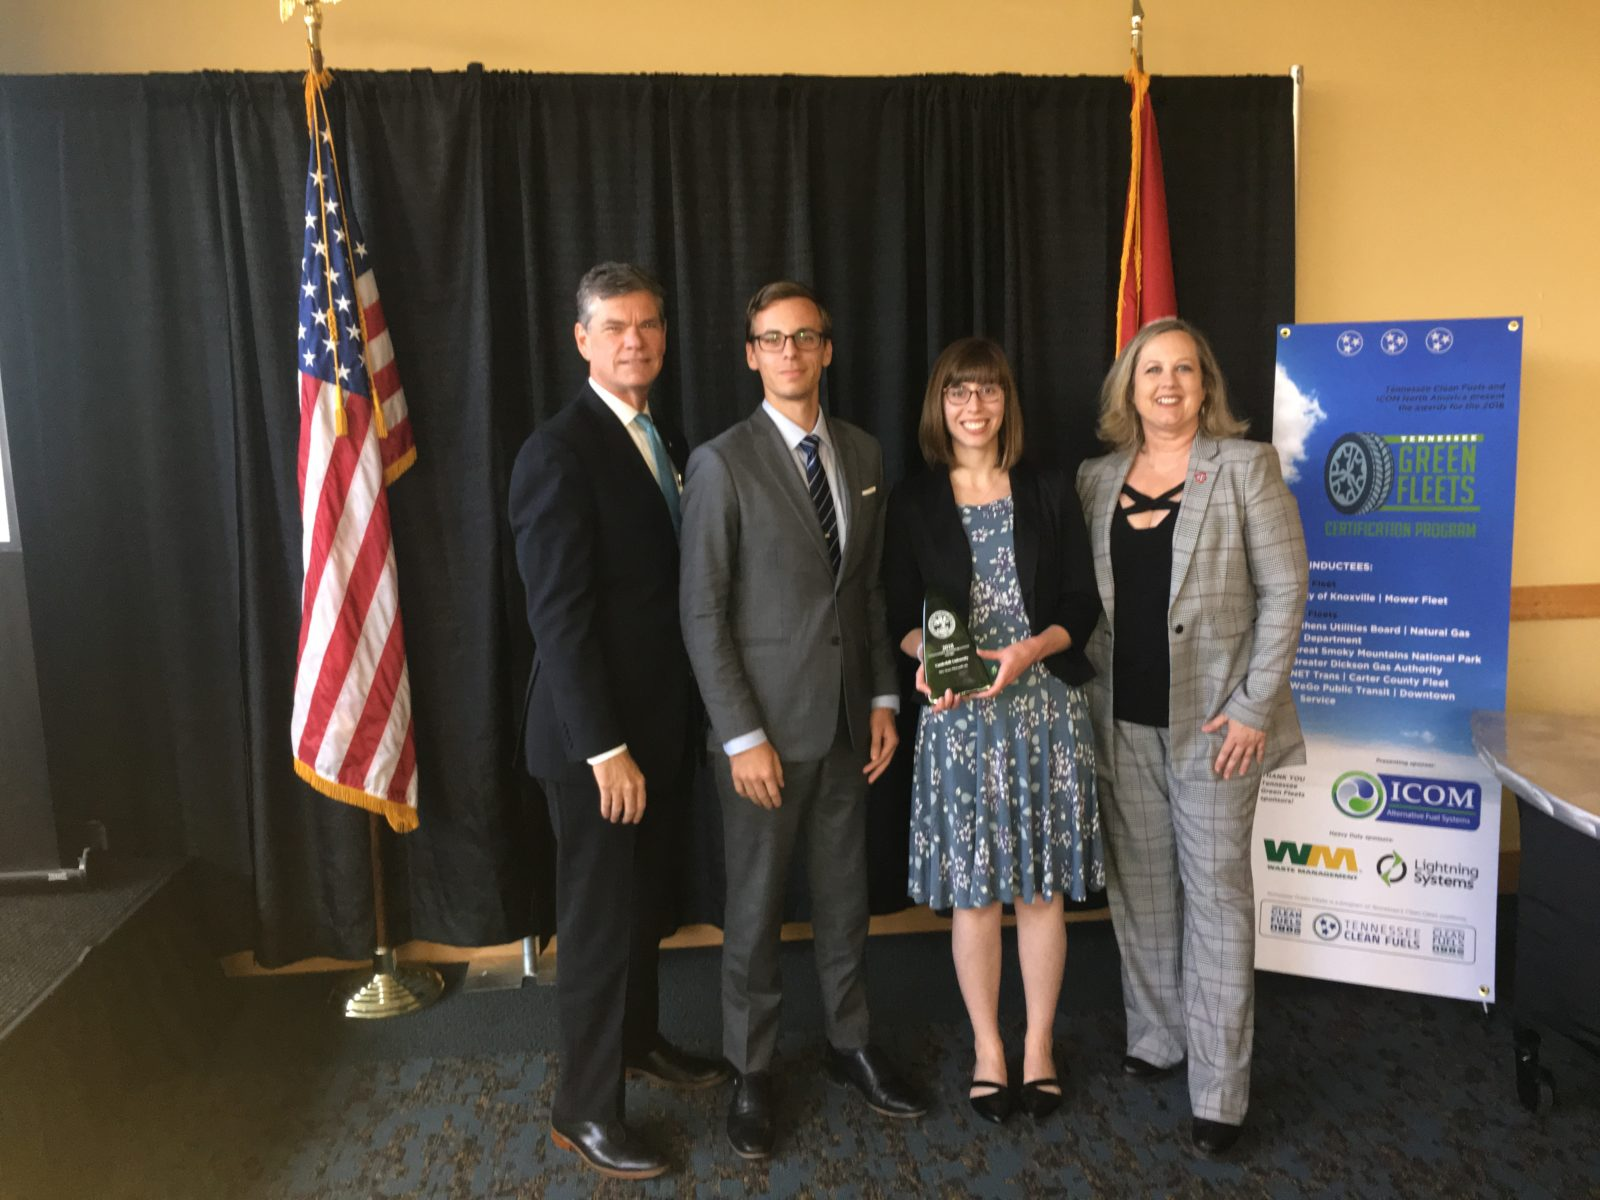 L-r: Daniel E. Pallme, assistant chief of environment and planning for TN Department of Transportation; Will Barbour, Vanderbilt University; Ashley Majewski, Vanderbilt University; Shari Meghreblian, commissioner, TN Department of Environment and Conservation